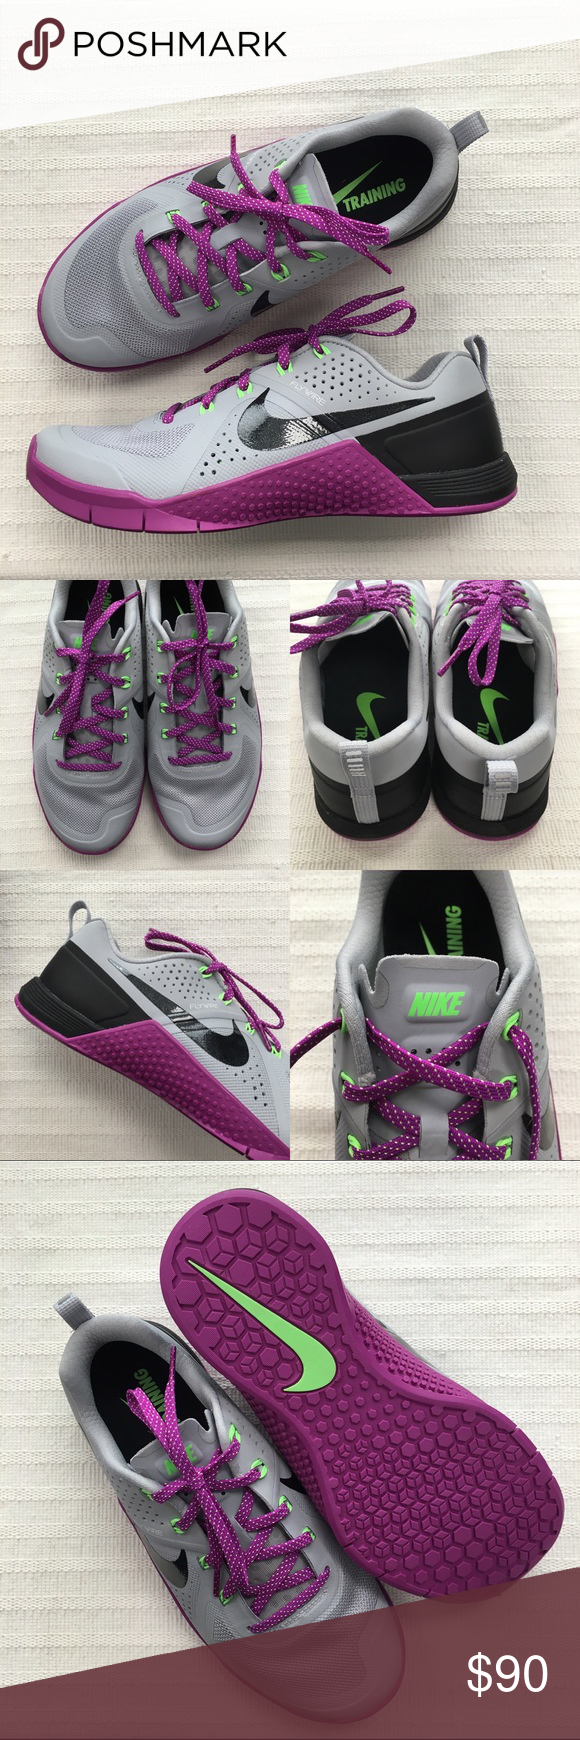 37920721f813df Women s Nike Metcon 1 Crossfit Training Shoes Women s Nike Metcon 1  Crossfit Training Shoes Style Color  813101-005 • Women s size 9 • NEW in  box (no lid) ...